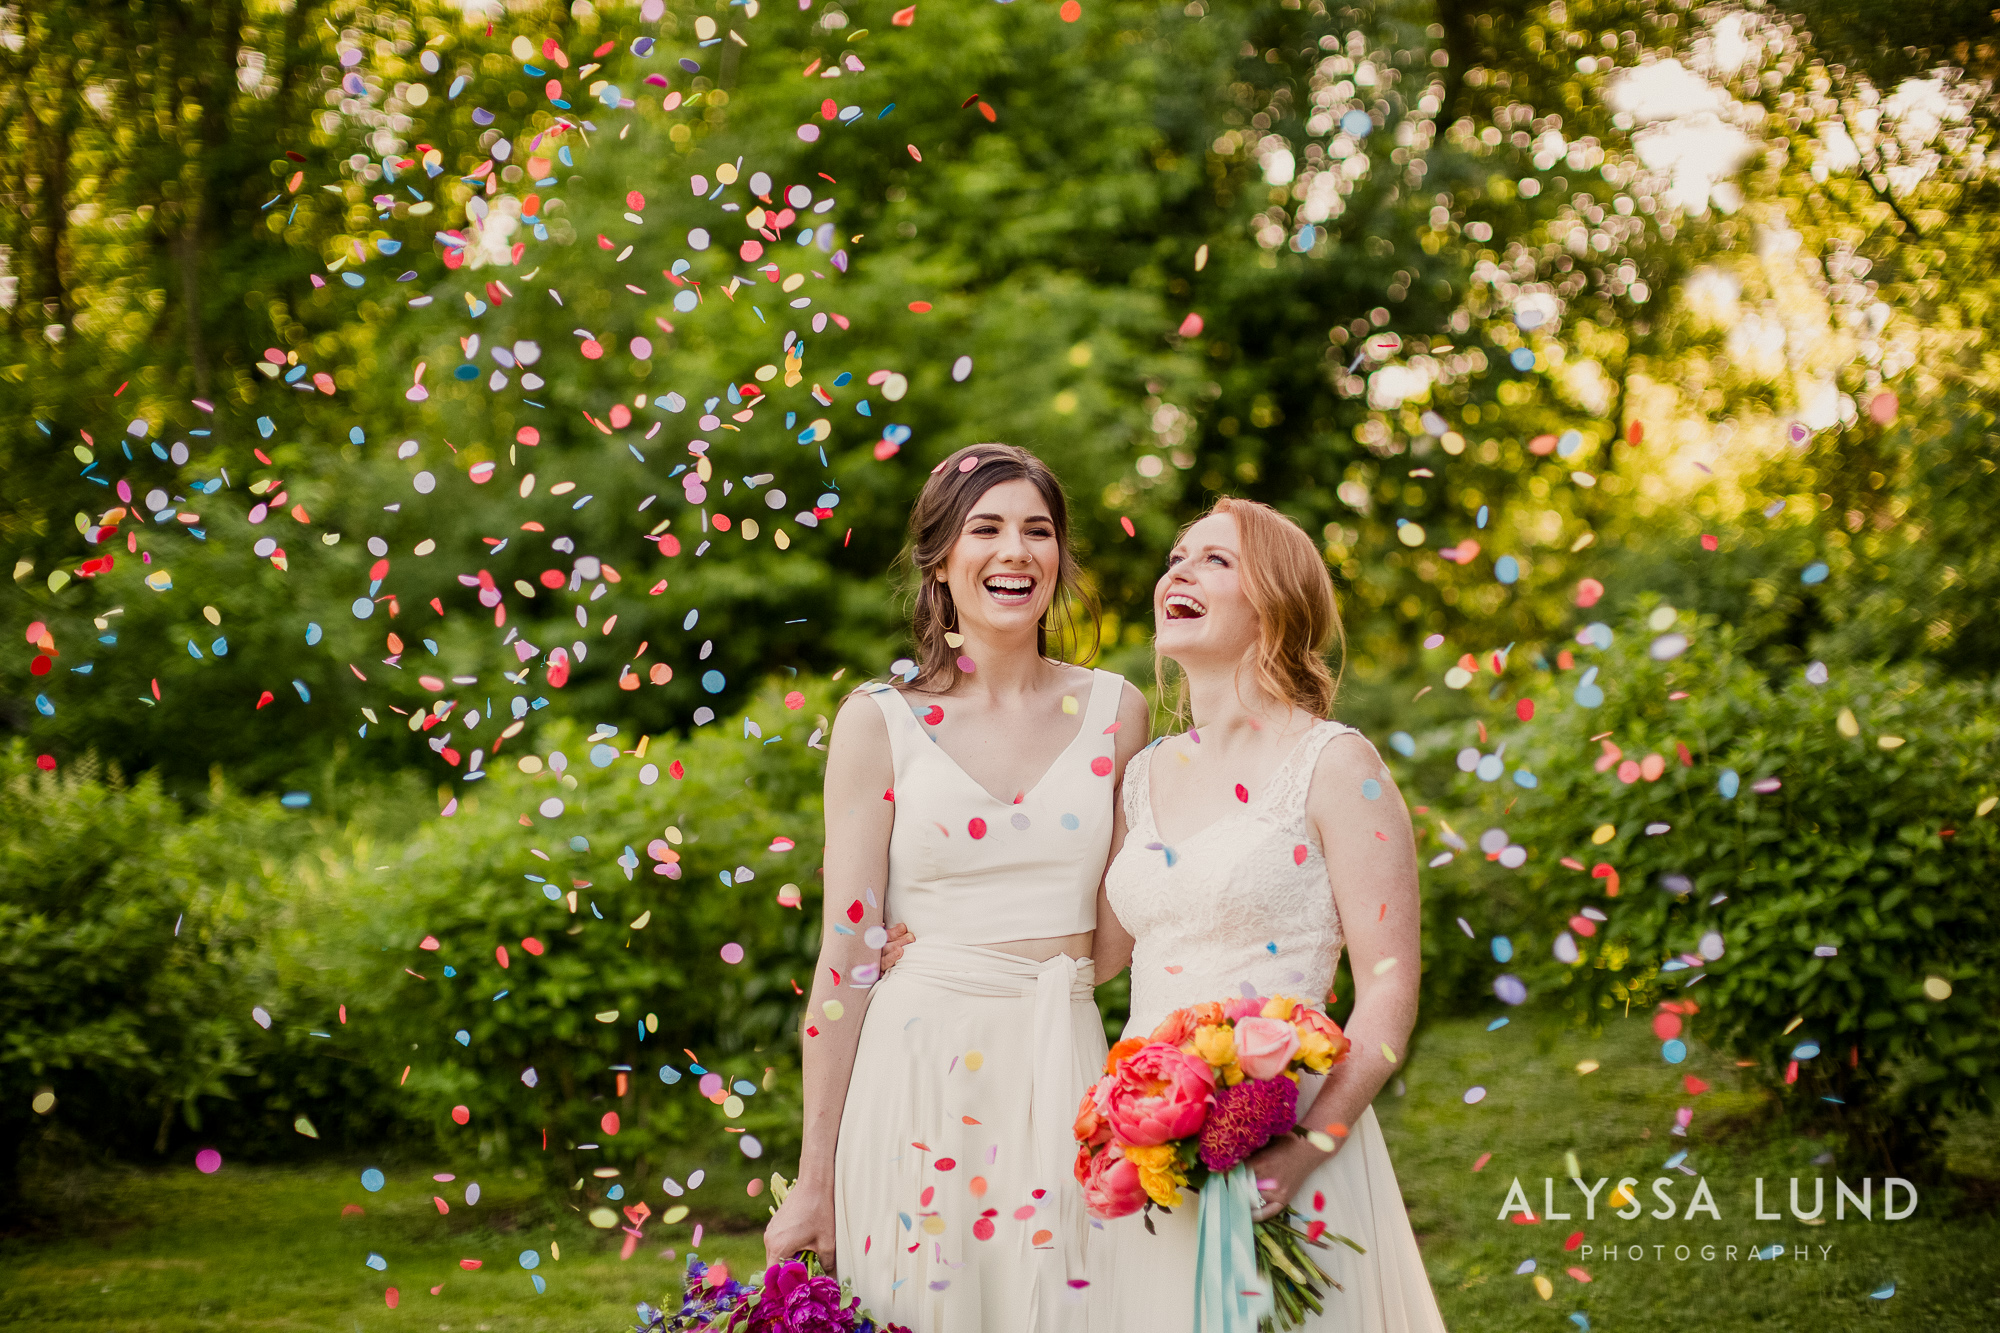 Queer wedding photography inspiration by Alyssa Lund Photography-18.jpg